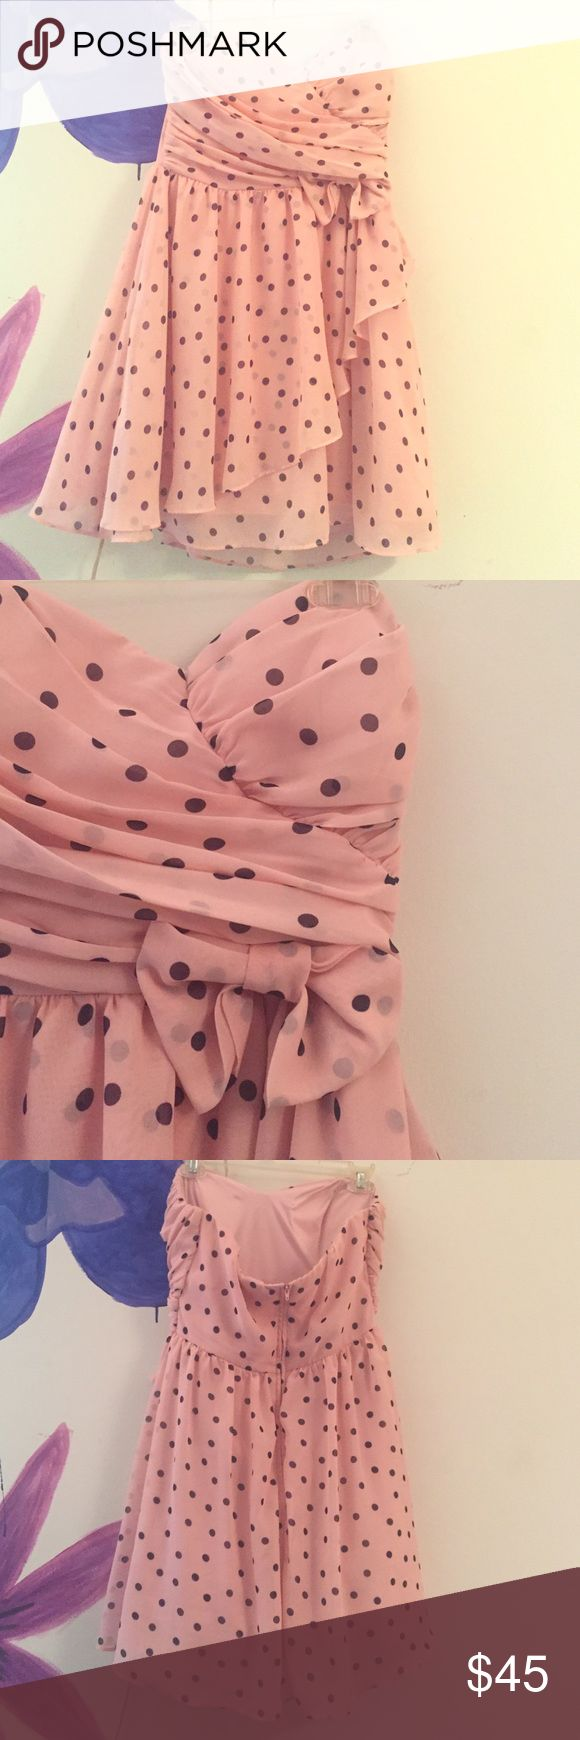 Polka dot semi-formal dress It's a beautiful light pink and navy/plum polka dot dress with lots of layers and tulle underneath, I've only worn it once and I grew out of it, it's in beautiful condition, wish I could still fit in it. B. Smart Dresses Strapless